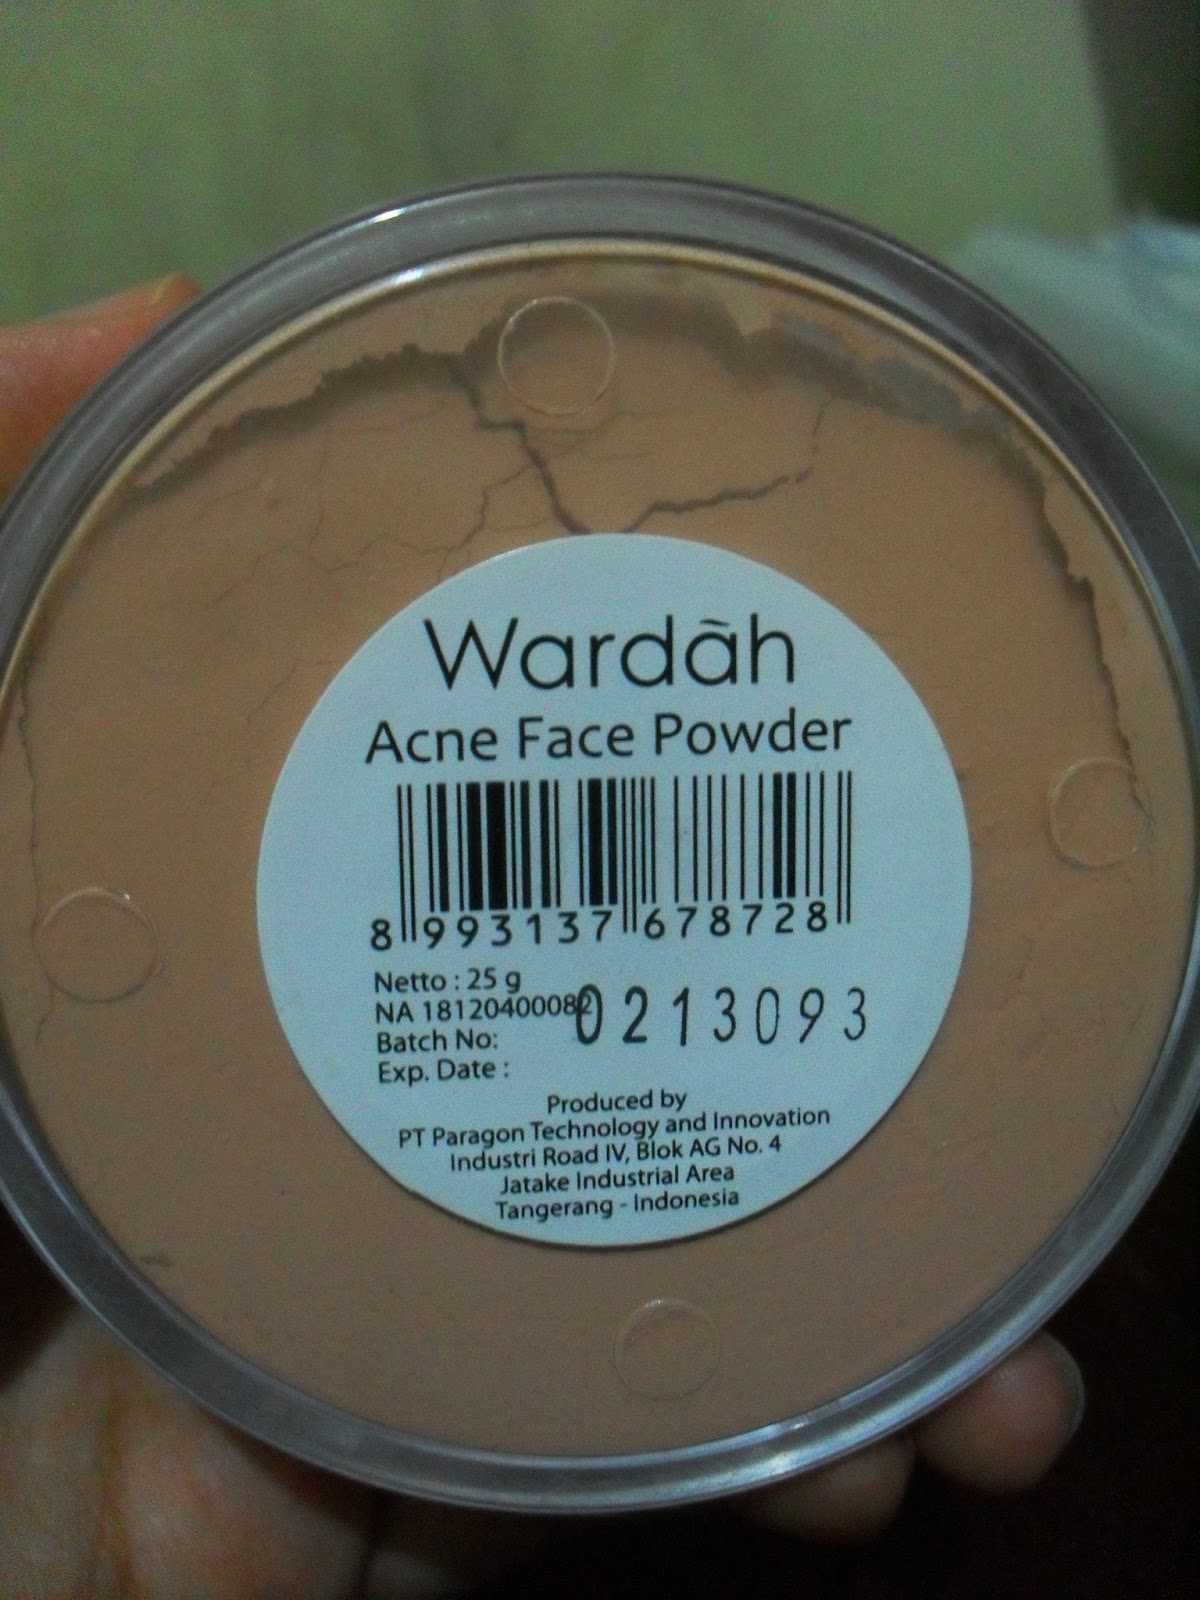 SOLD OUT Thank You Wardah Acne Face Powder For Your